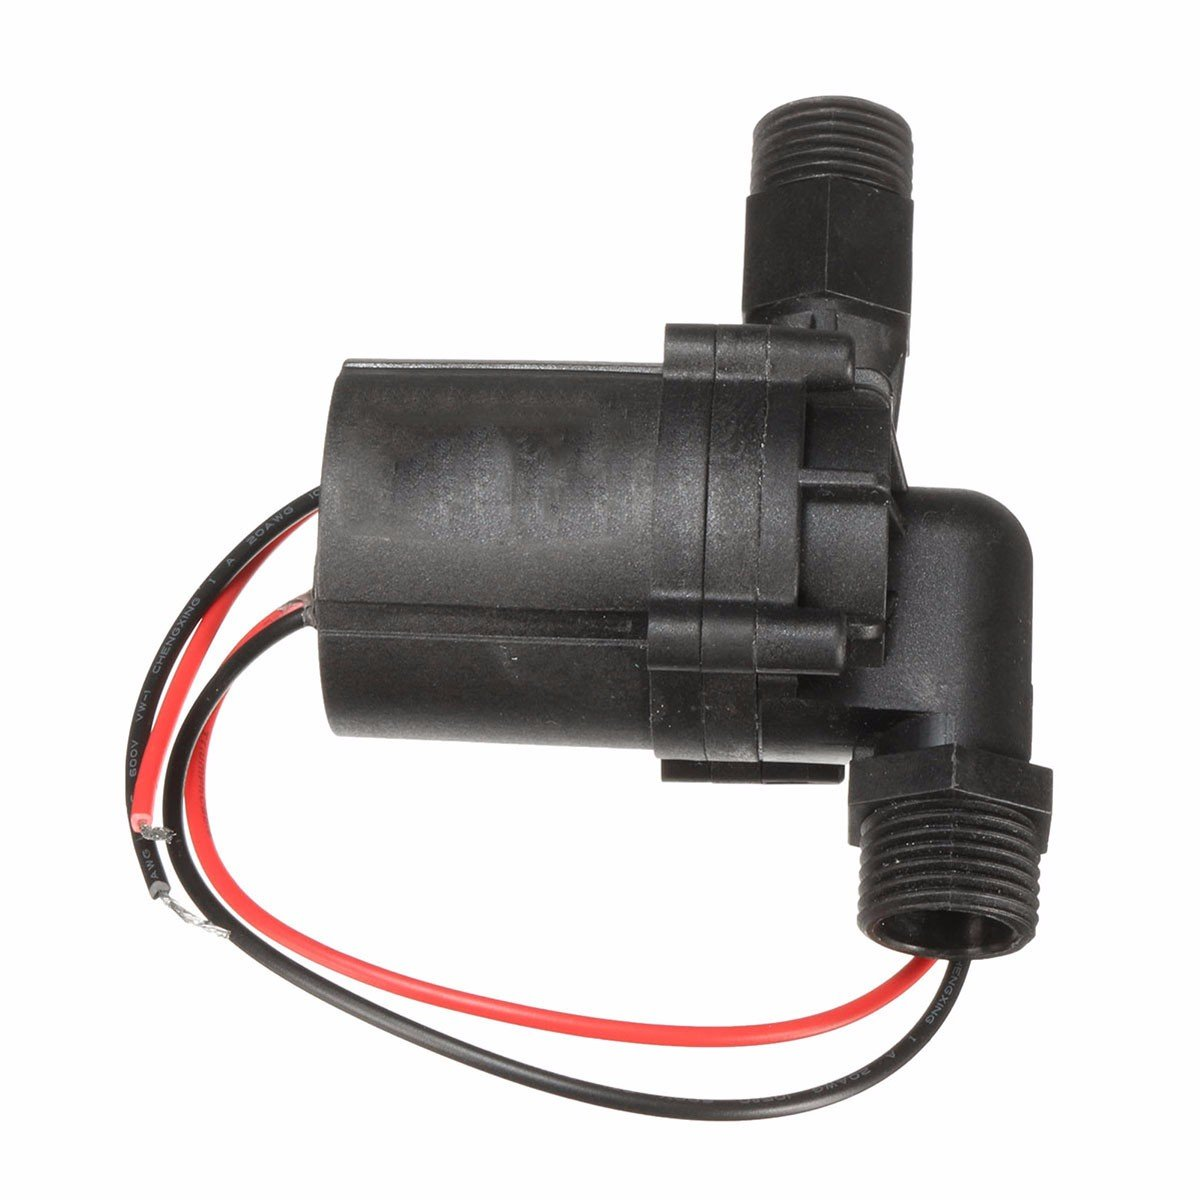 12V Brewing Equipment Brushless Pumps Without Power Supply by Ologymart (Image #2)